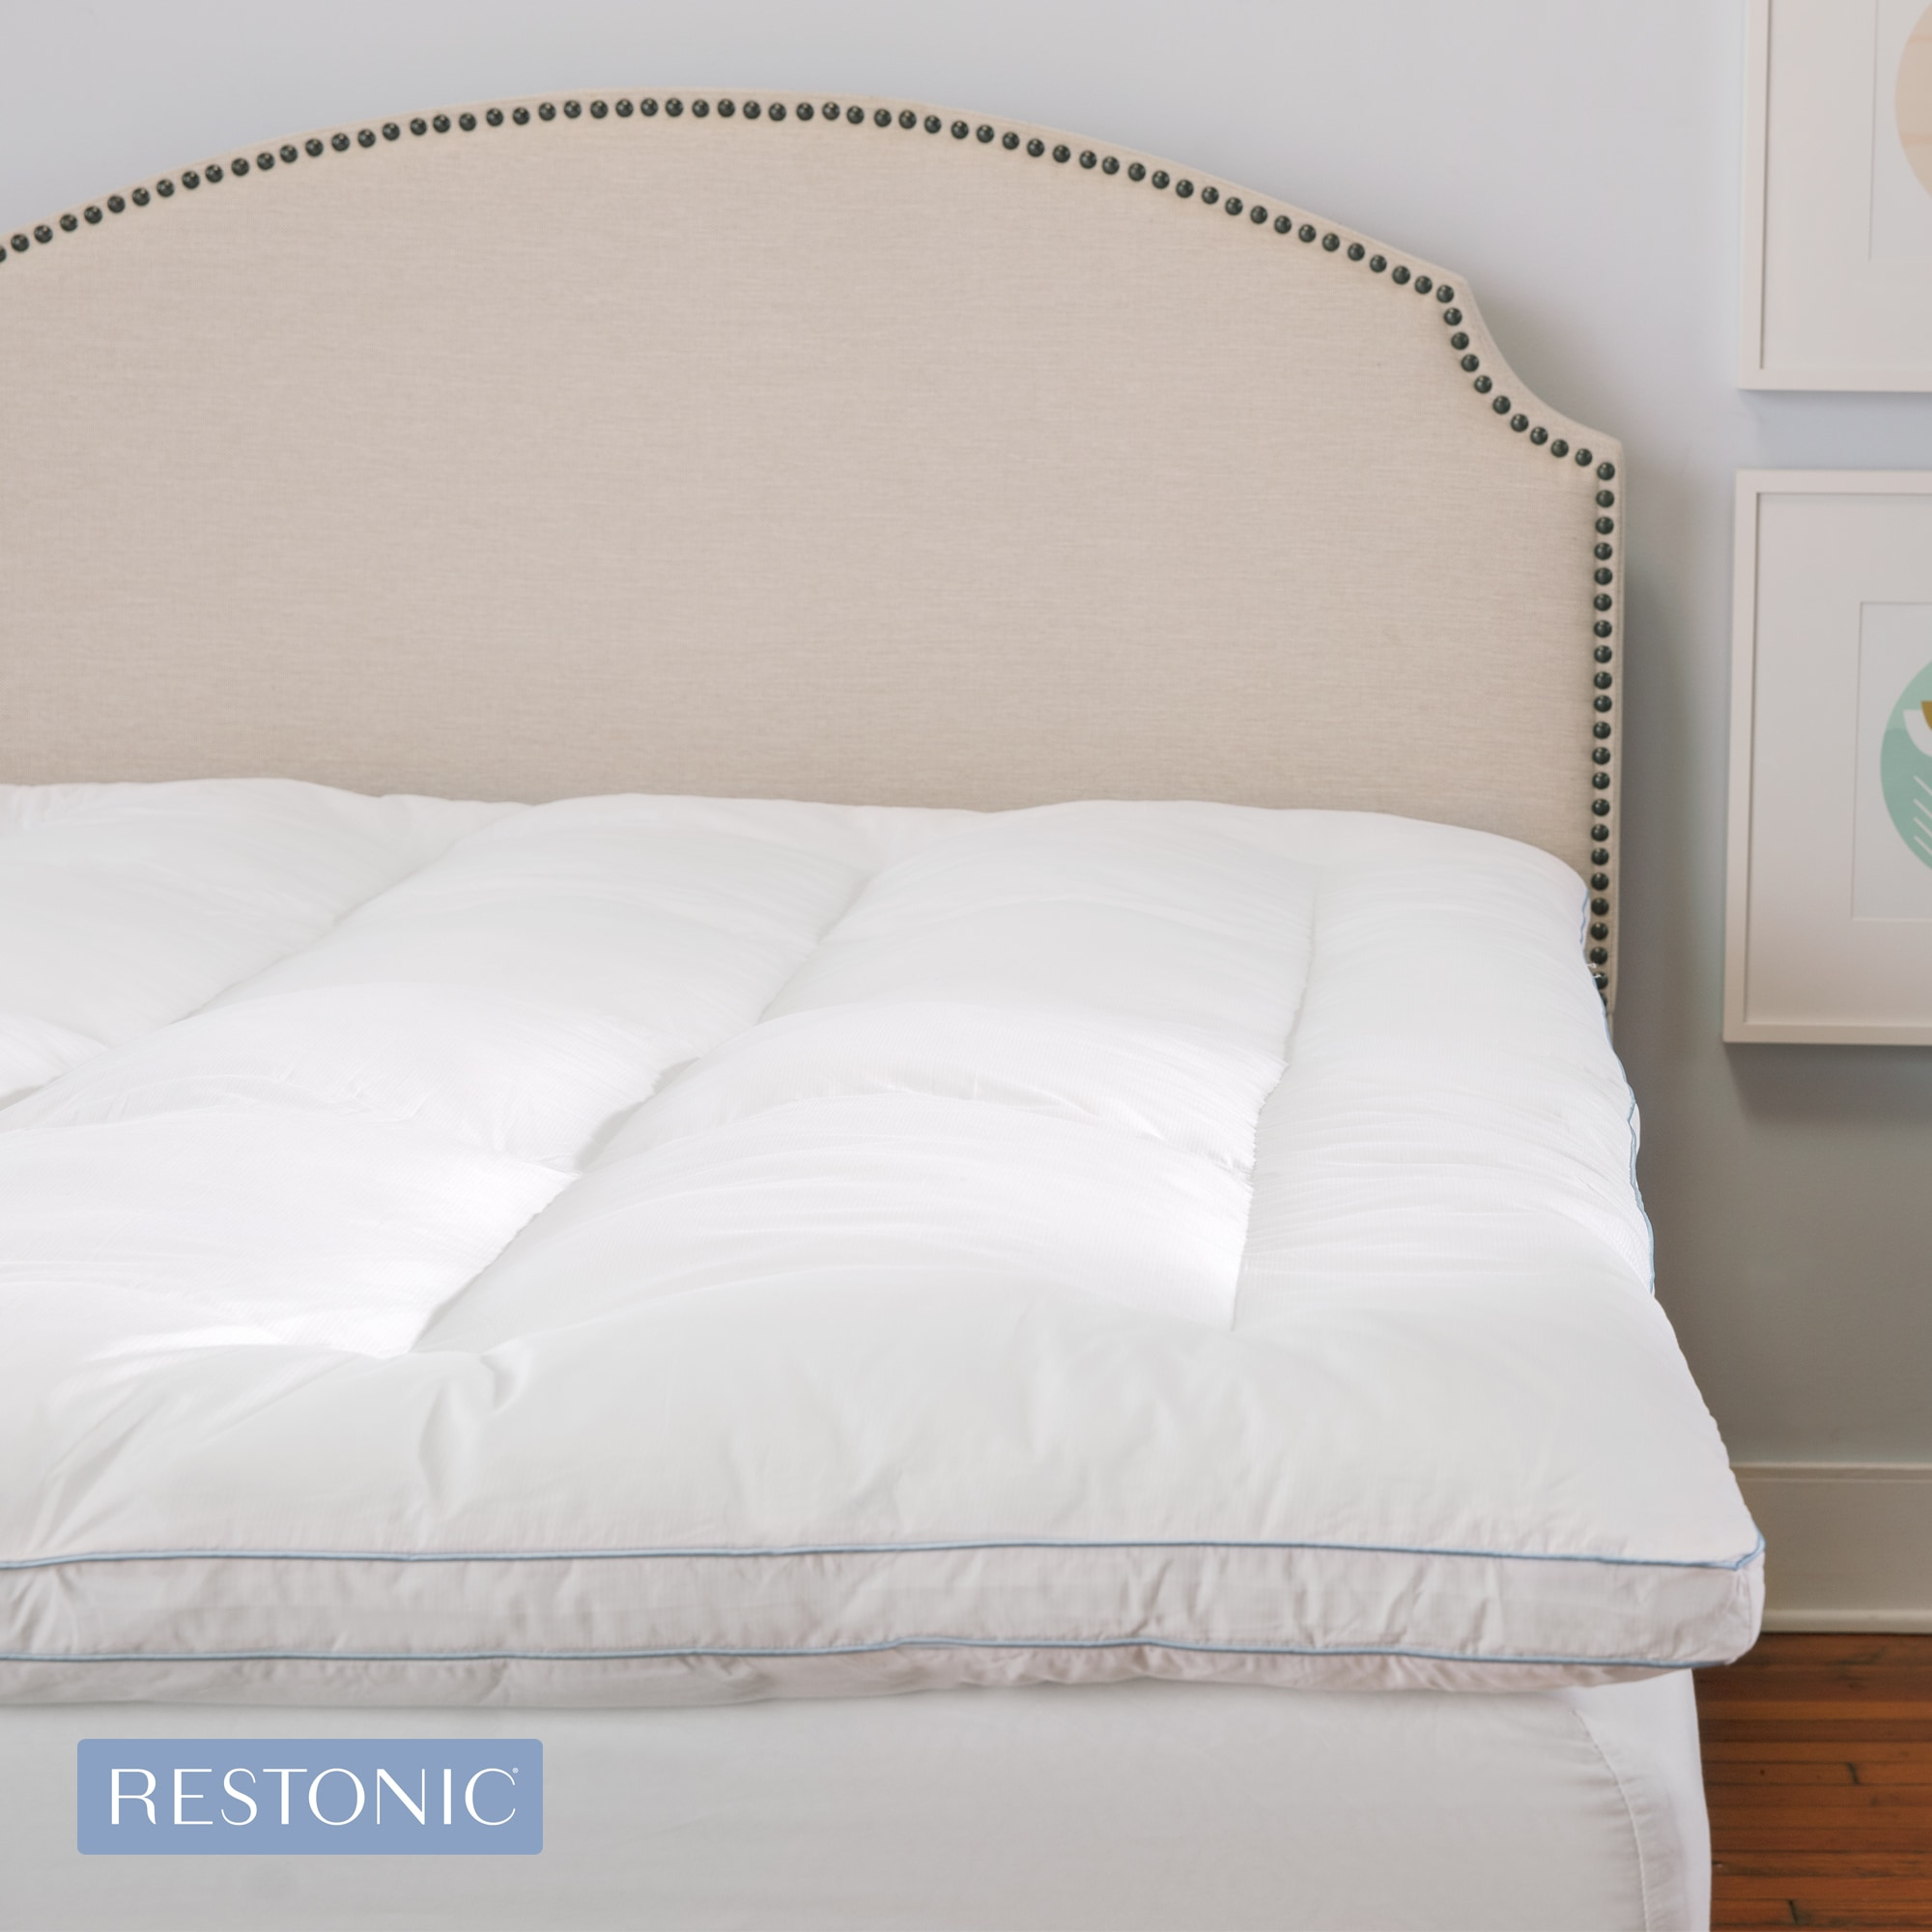 bedding pillow product white shipping topper fiber bath overstock memoryloft infused bed bonus to today with back free gel swisslux campus mattress